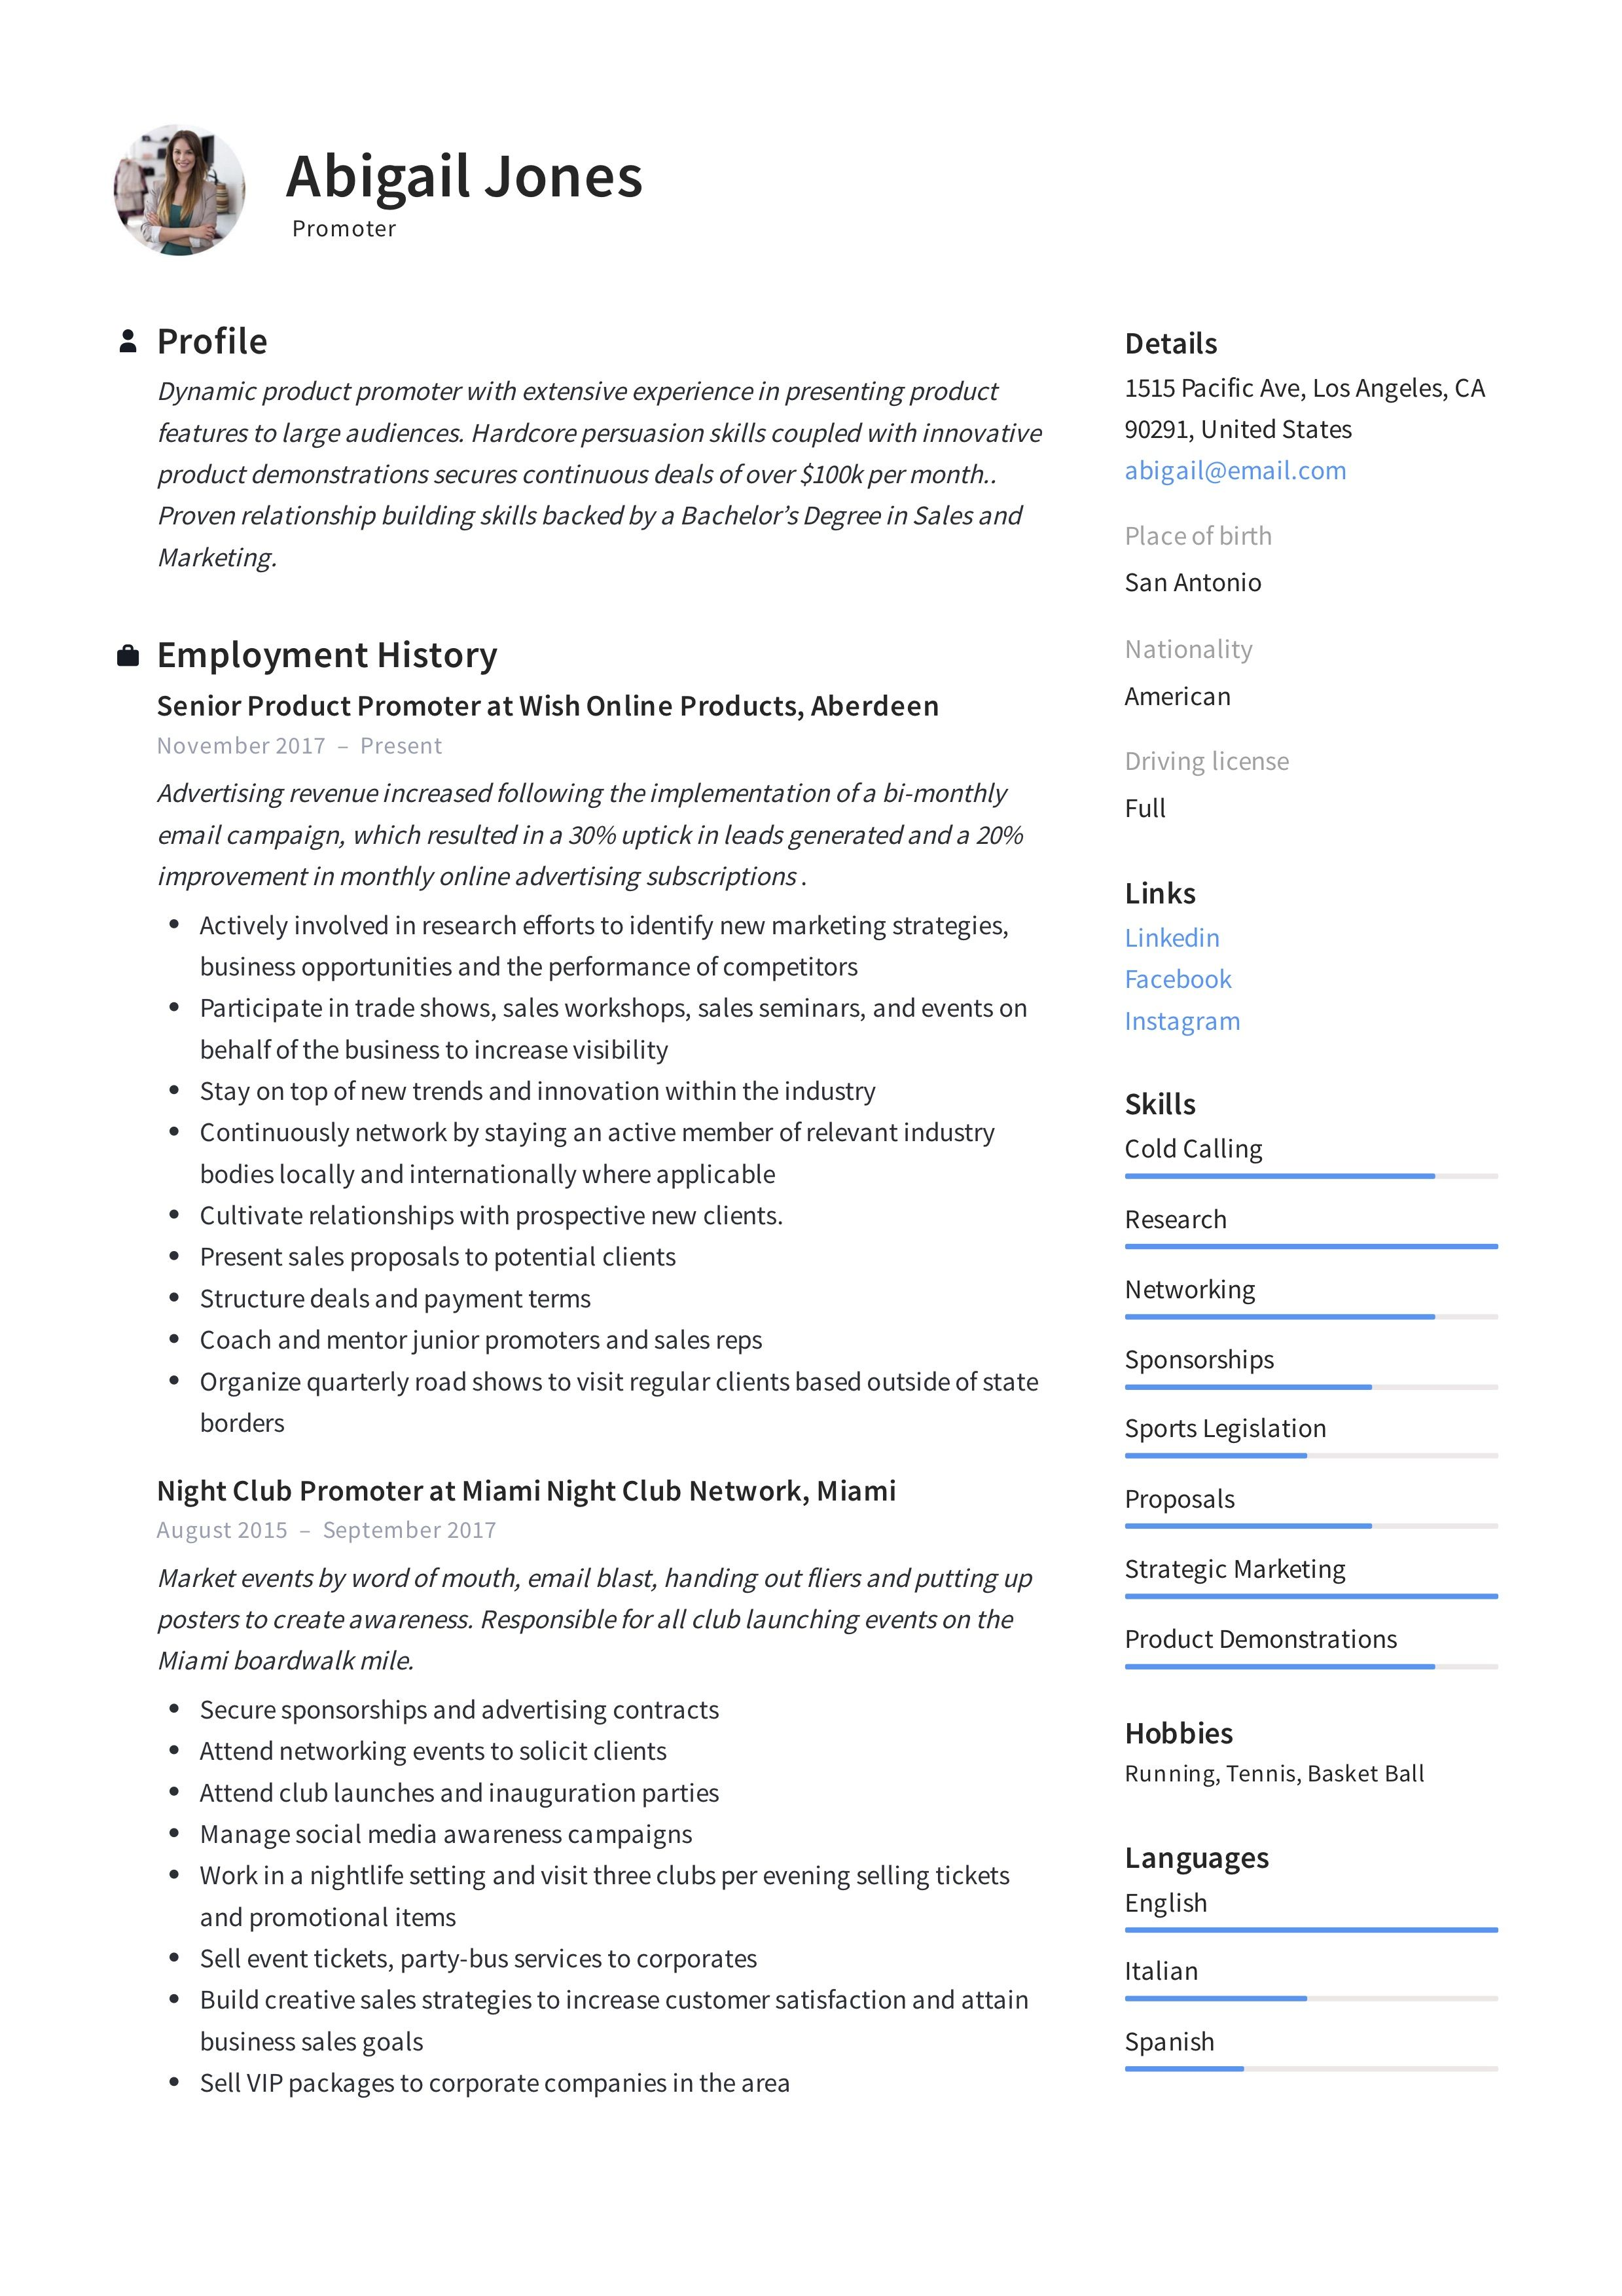 Promoter Resume Example & Writing Guide in 2020 Resume